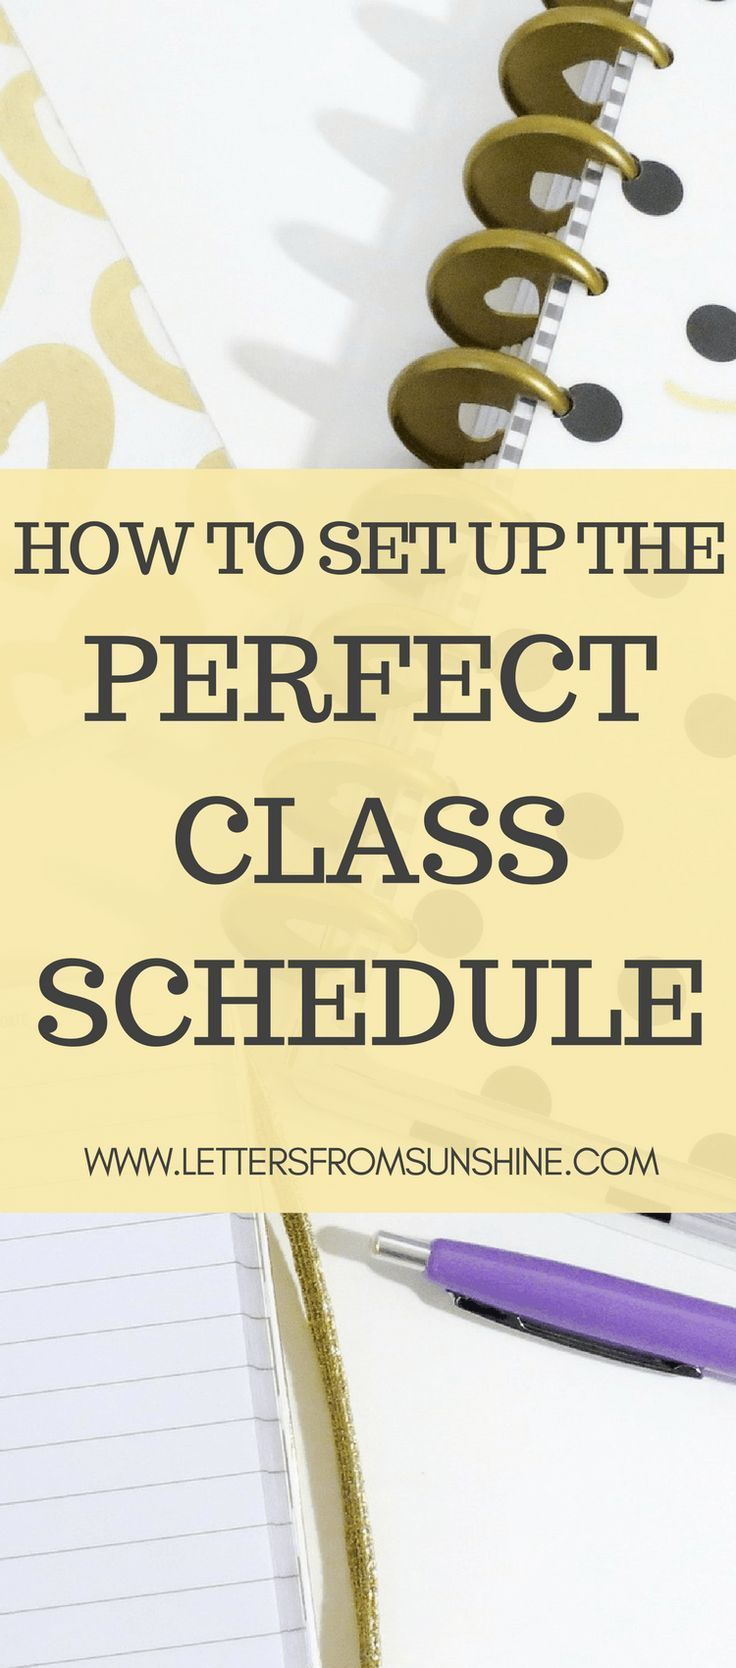 Are you wondering how to make the best schedule possible for college? Check out this post from Letters From Sunshine, which covers tips on how to create the best schedule, what you should avoid, and more! www.lettersfromsunshine.com